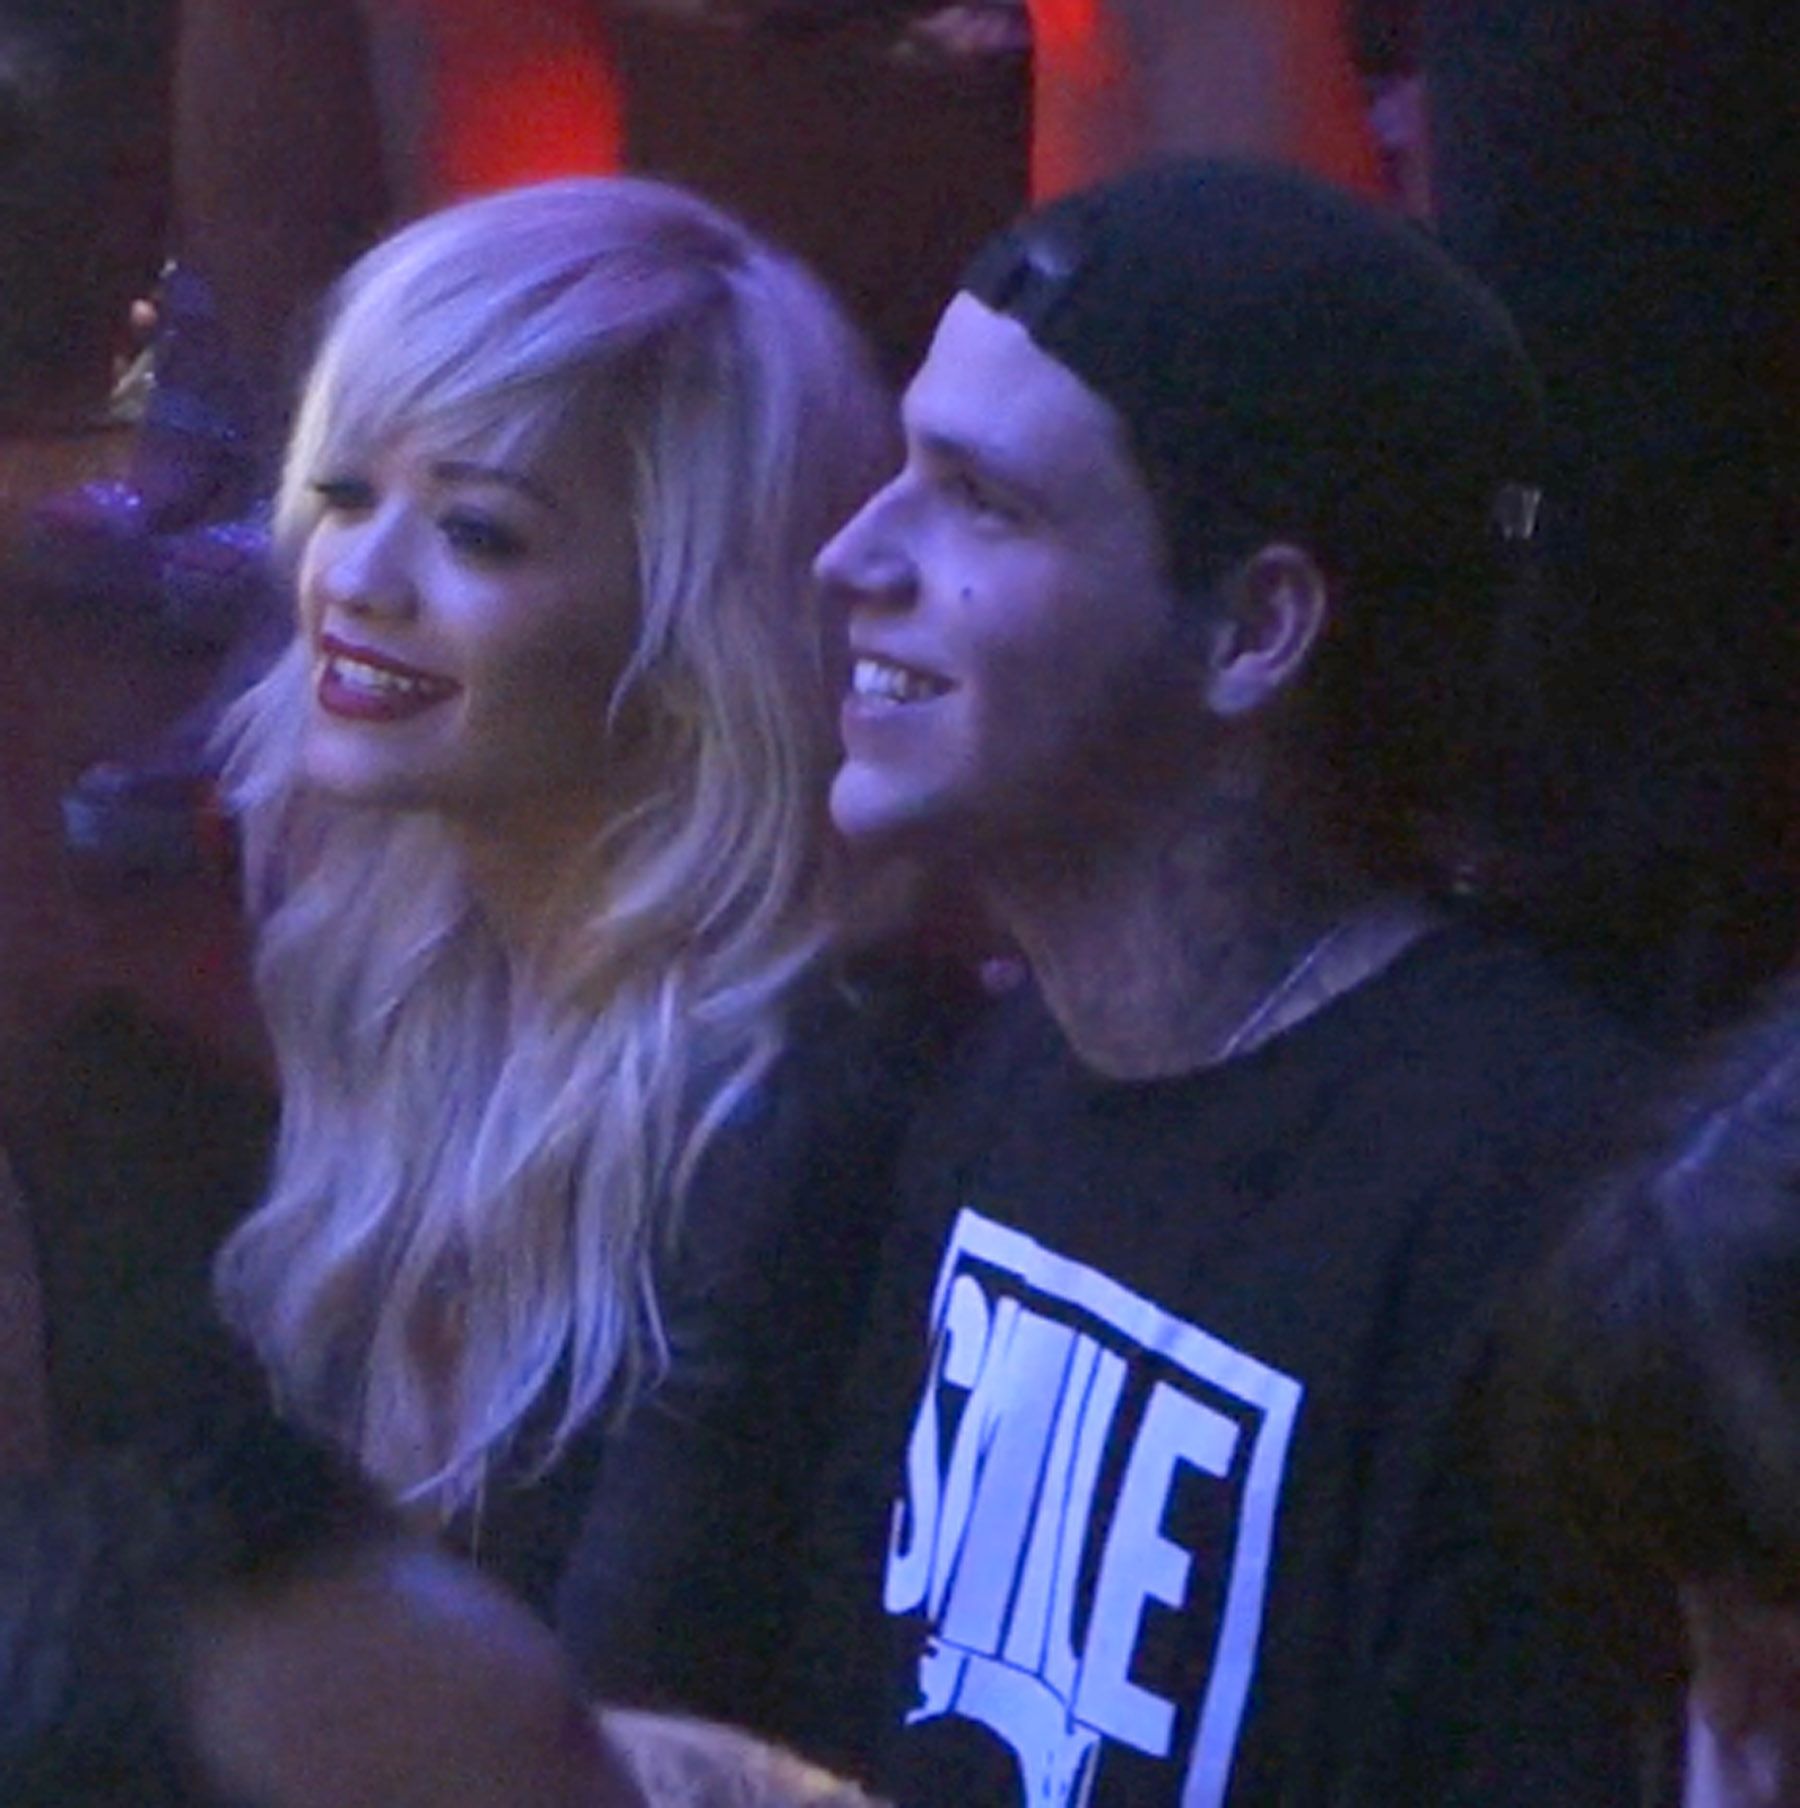 Rita Ora parties with Richard Hilfiger at her party inside TAO in Las Vegas on the same night her ex-boyfriend Calvin Harris was djing at a nearby club